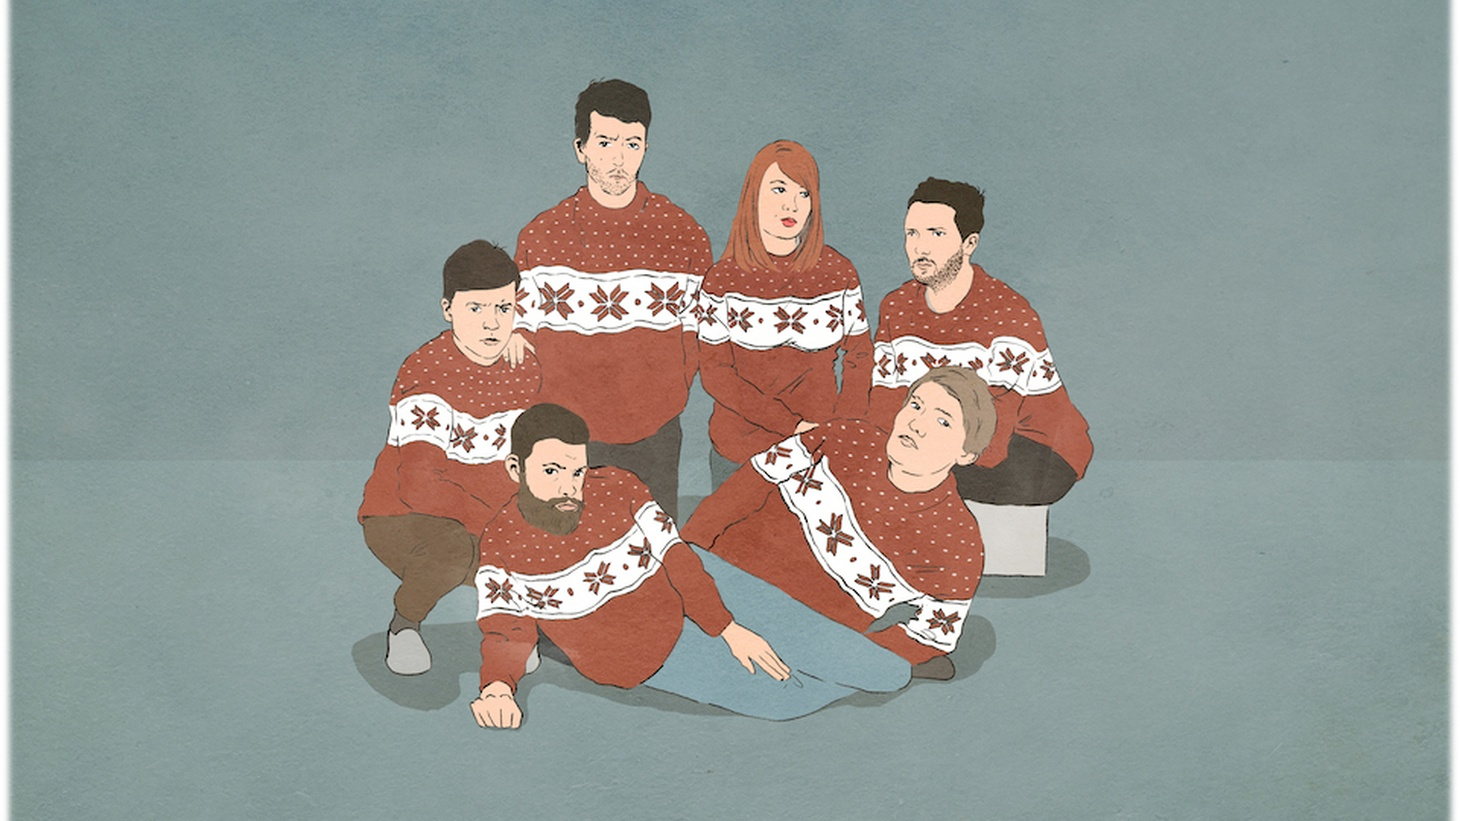 As 2014 slowly but surely becomes a thing of the past, we offer one last music stream for the year, and what better present than a new Xmas treat from Welsh indie-rock sextet Los Campesinos!